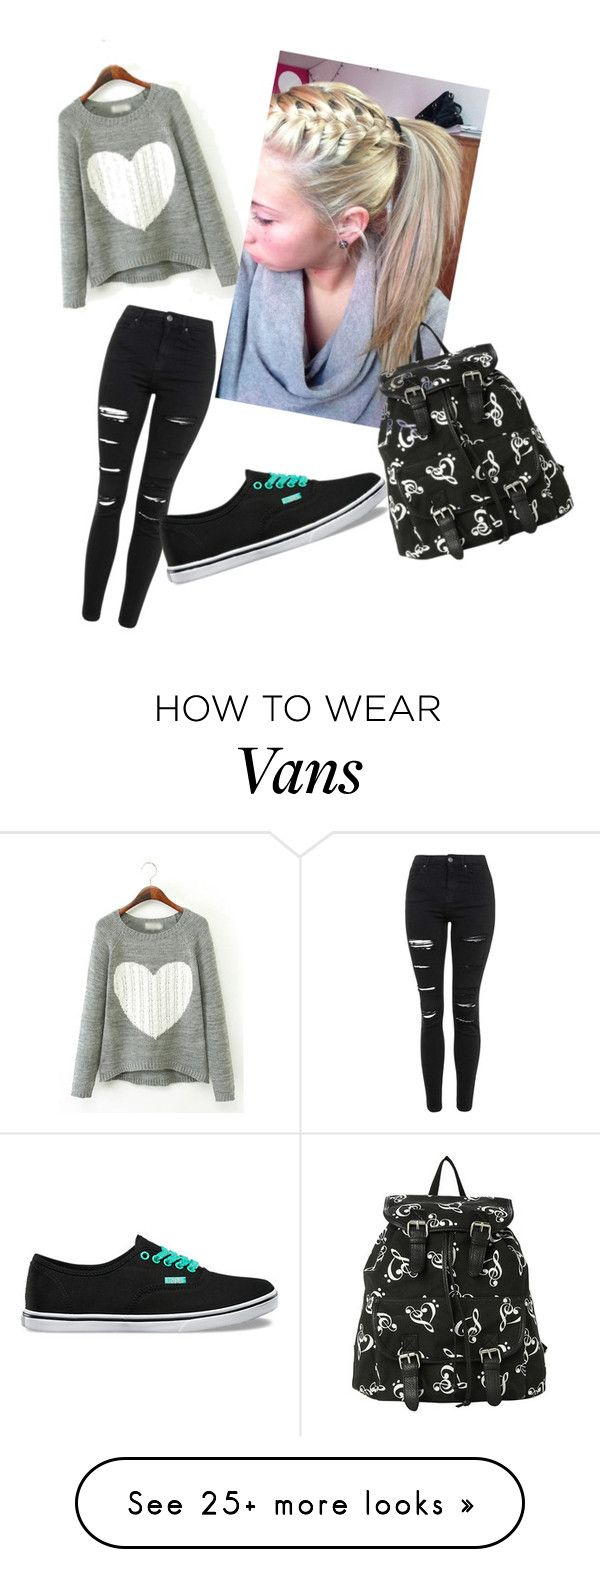 """""""back 2 school"""" by yohannaapm on Polyvore featuring Topshop, Vans, women's clothing, women's fashion, women, female, woman, misses and juniors"""